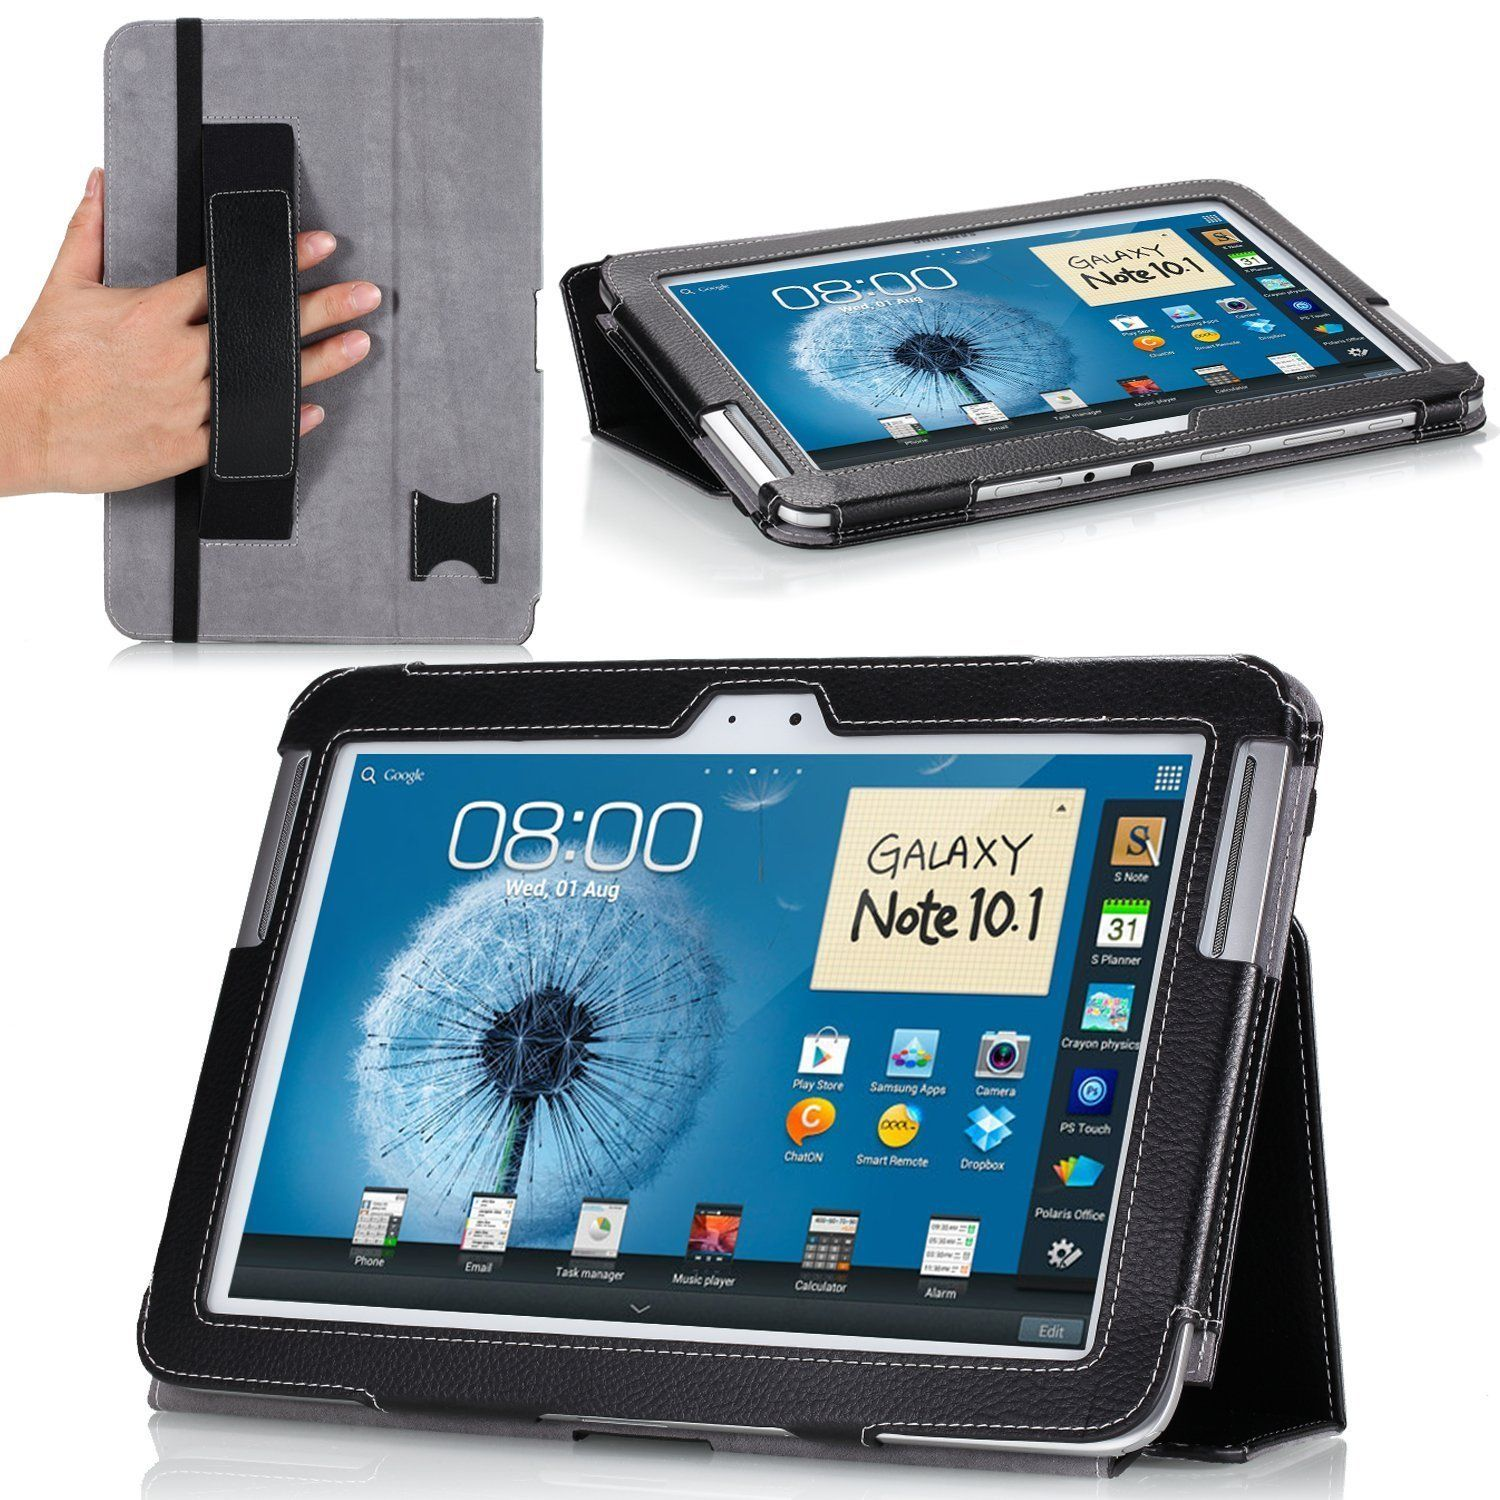 Amazon Com Moko Slim Case For Samsung Galaxy Note 10 1 Tablet Black Computers Accessories Tablets Electronica